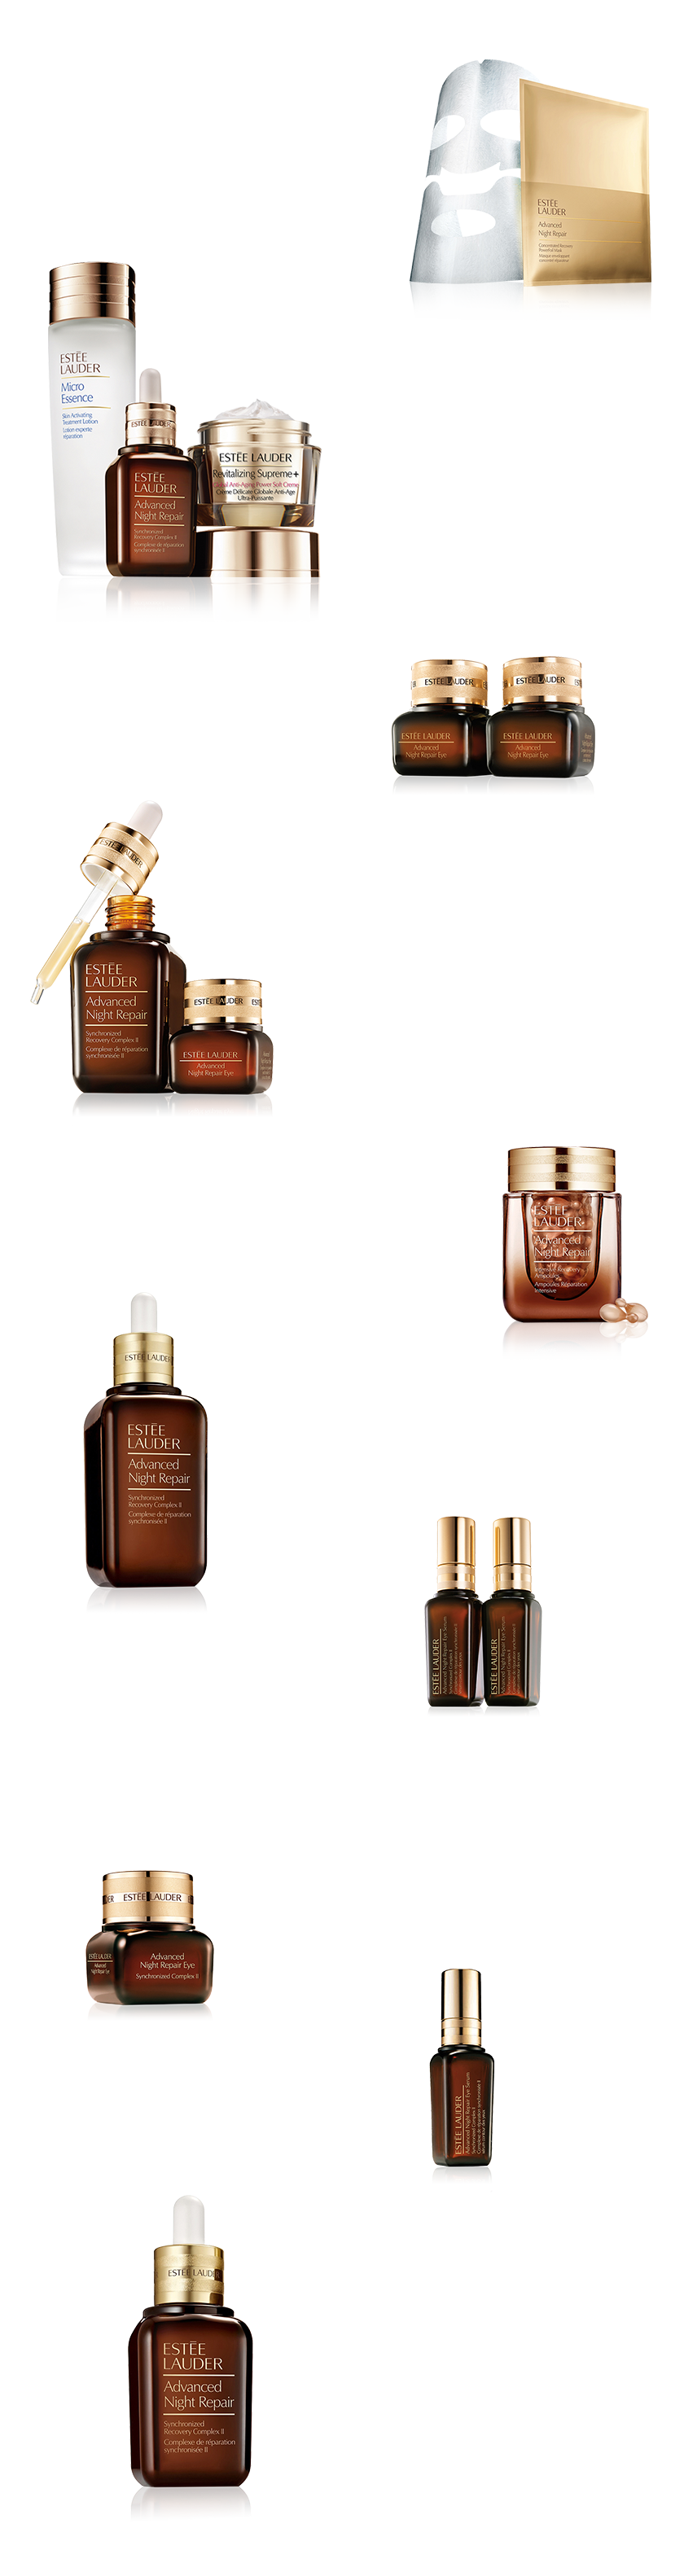 ESTEE LAUDER BEST SELLERS